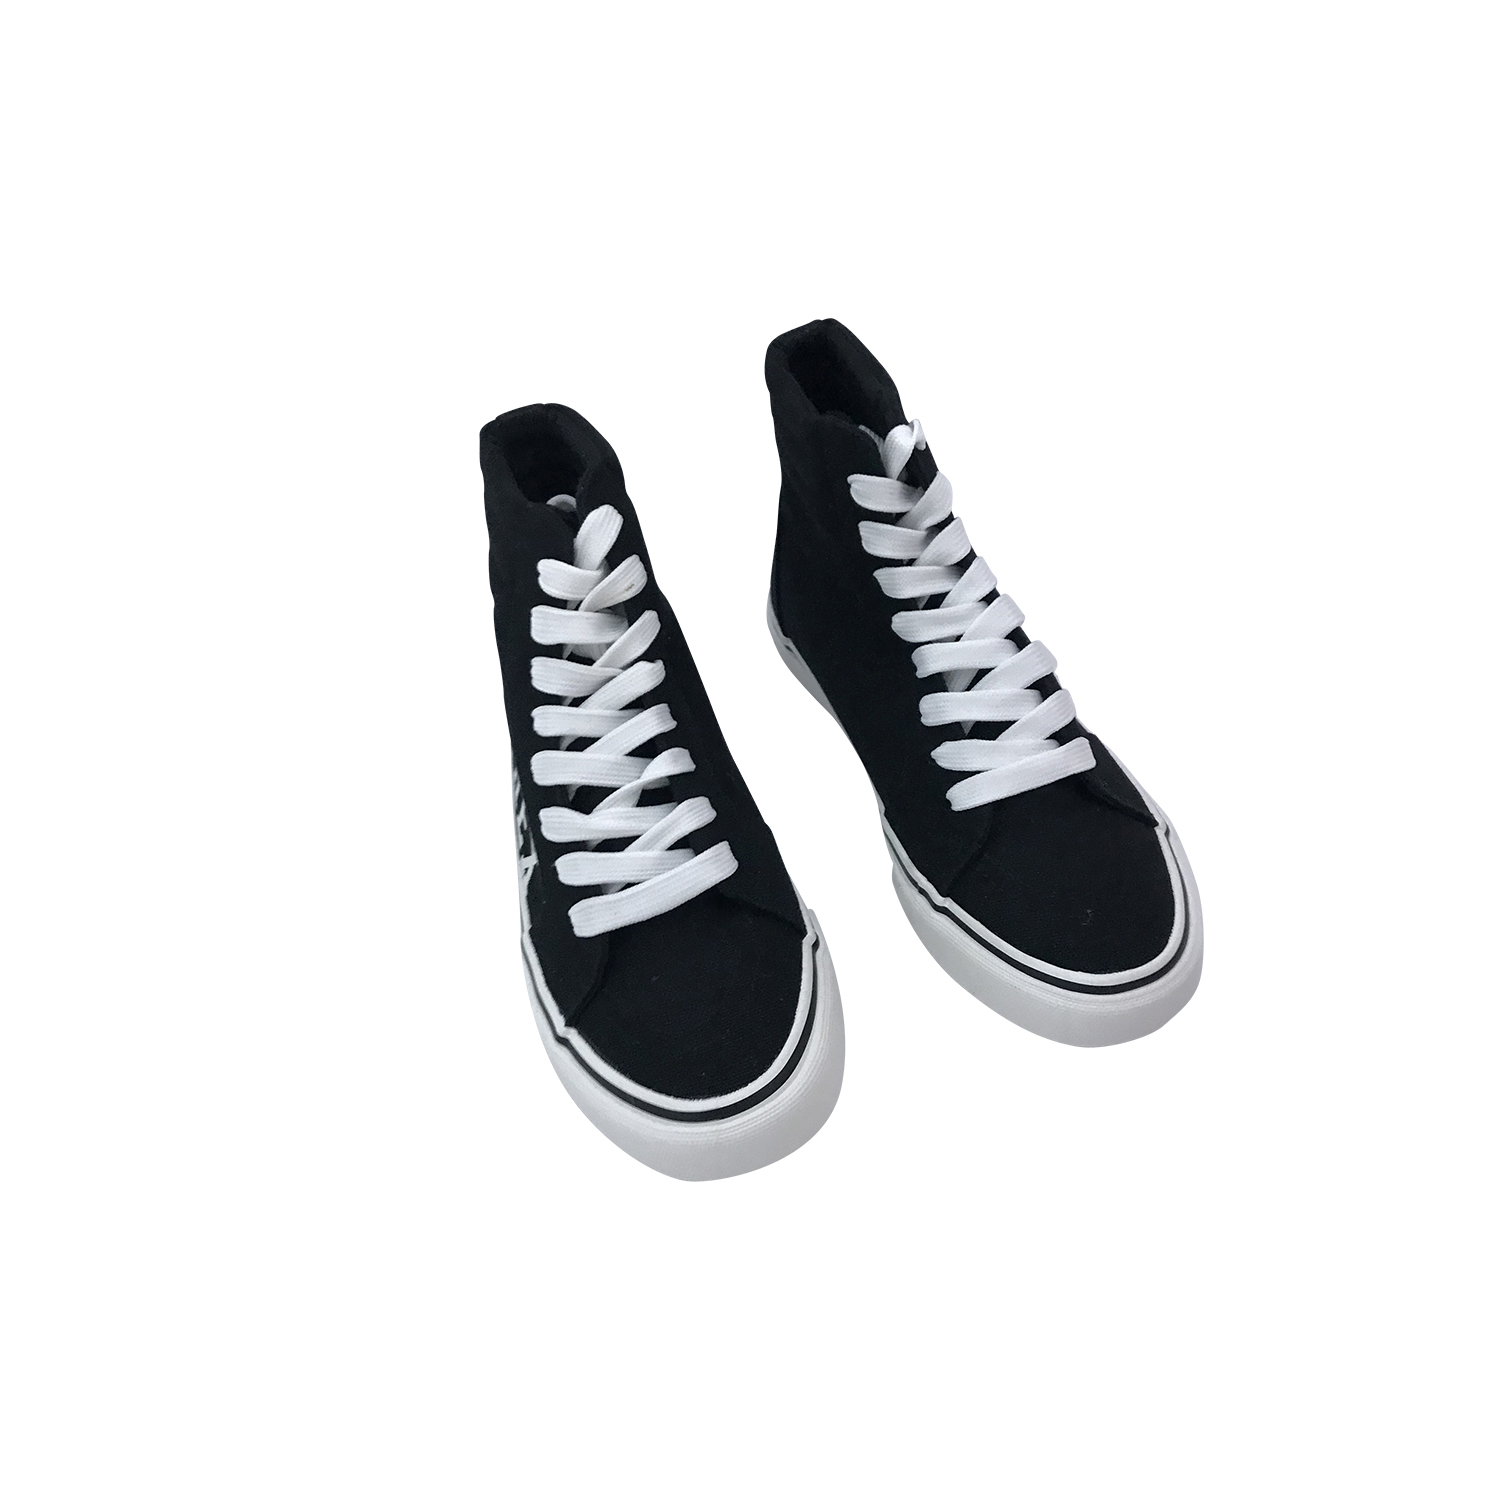 PYREX SNEAKERS ALTA IN TELA NERO